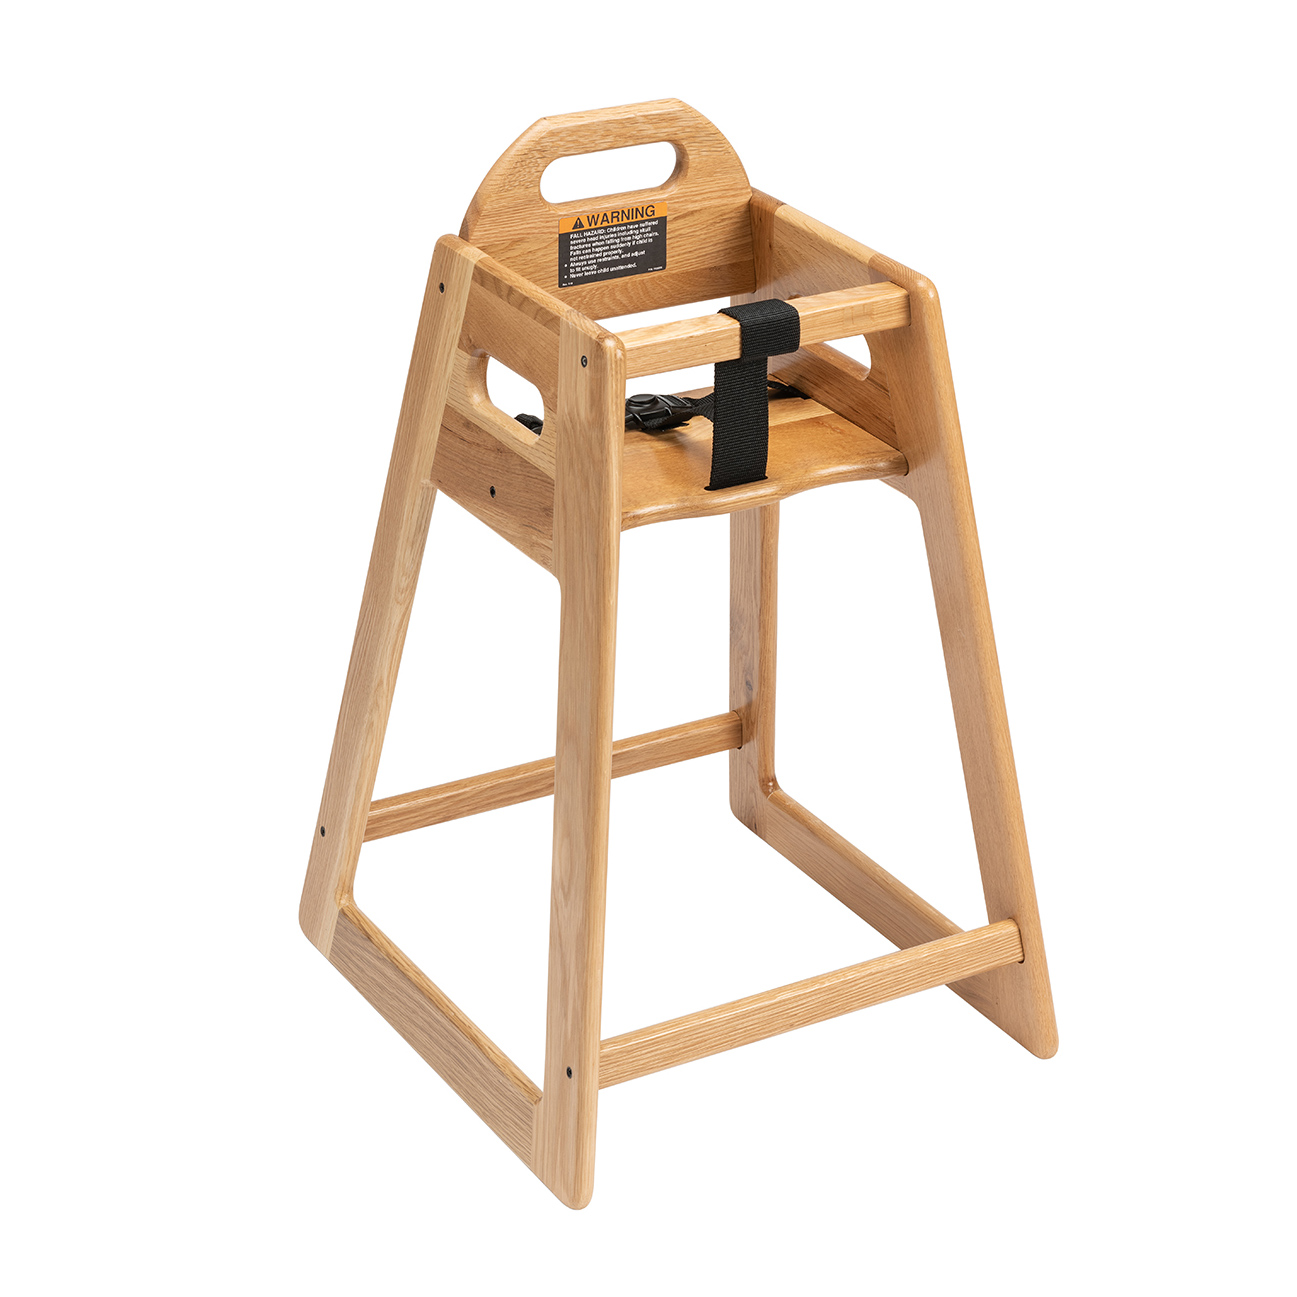 Crown Brands, LLC 1025860 high chair, wood